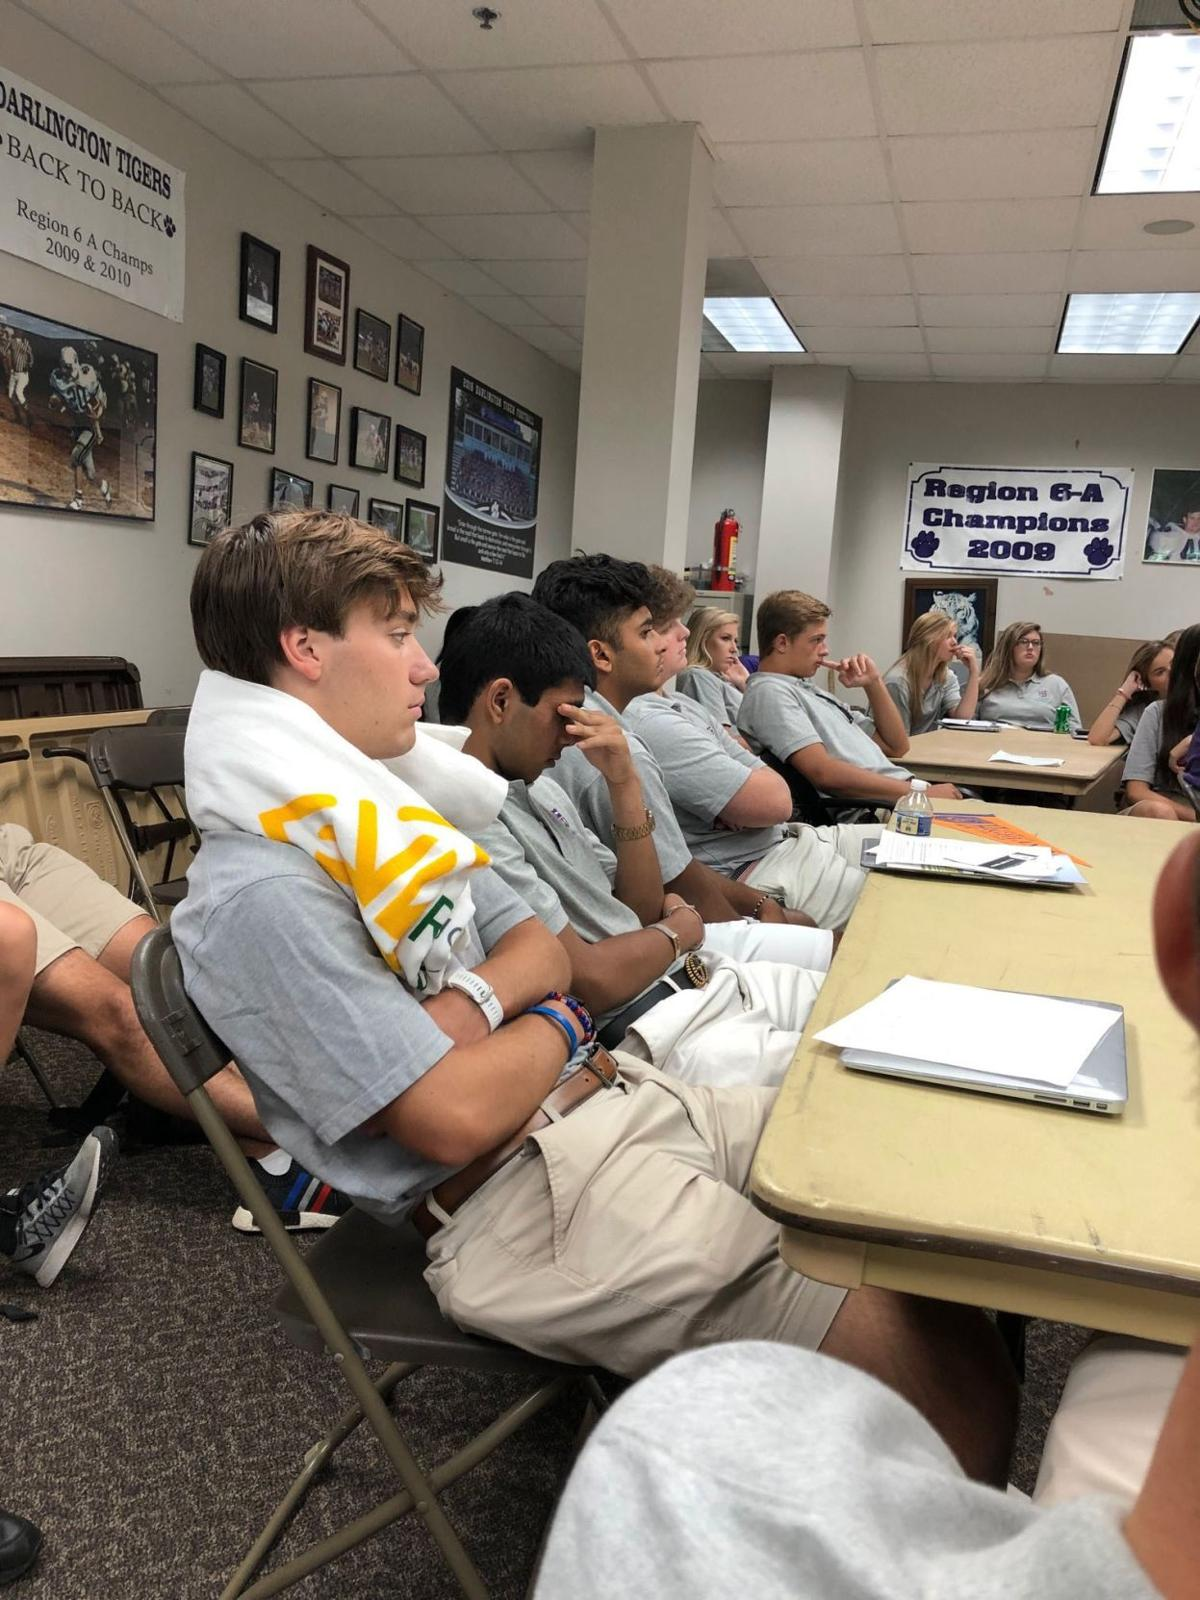 Darlington seniors spend first day of school at College Boot Camp